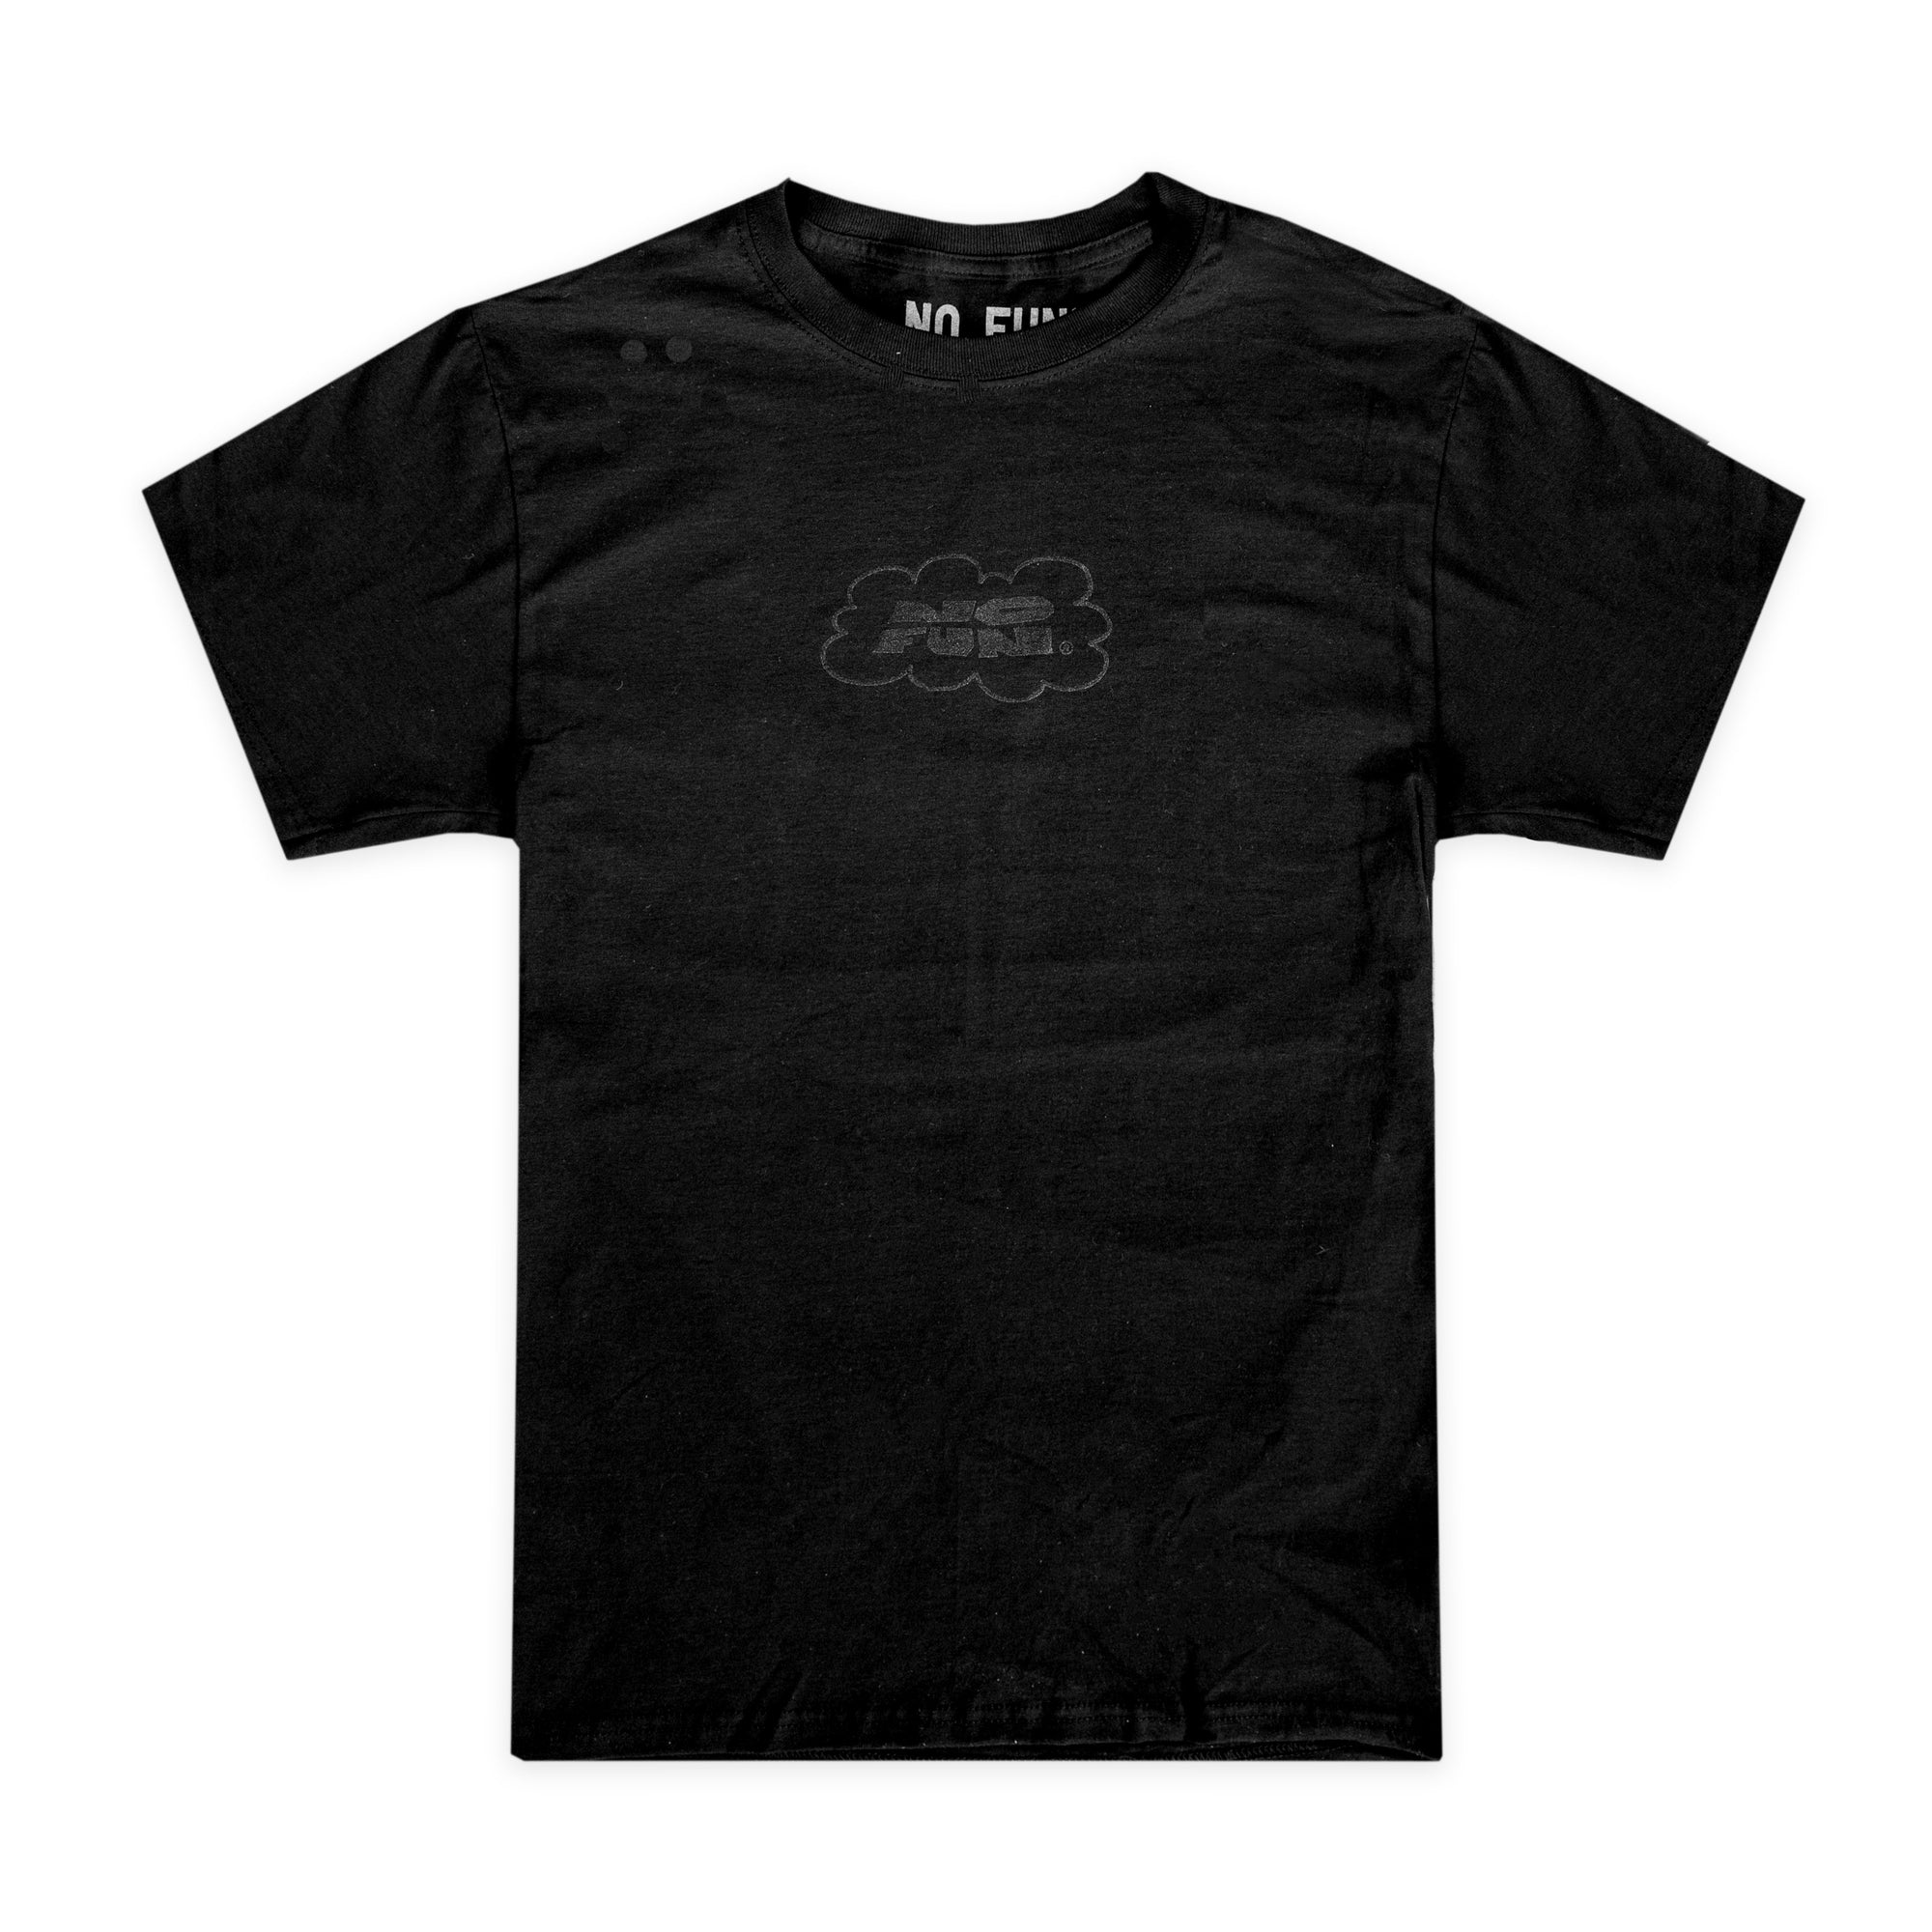 """Black Cloud"" T-Shirt from No Fun®. Black t-shirt, with black print of a hand-drawn cloud logo on chest."